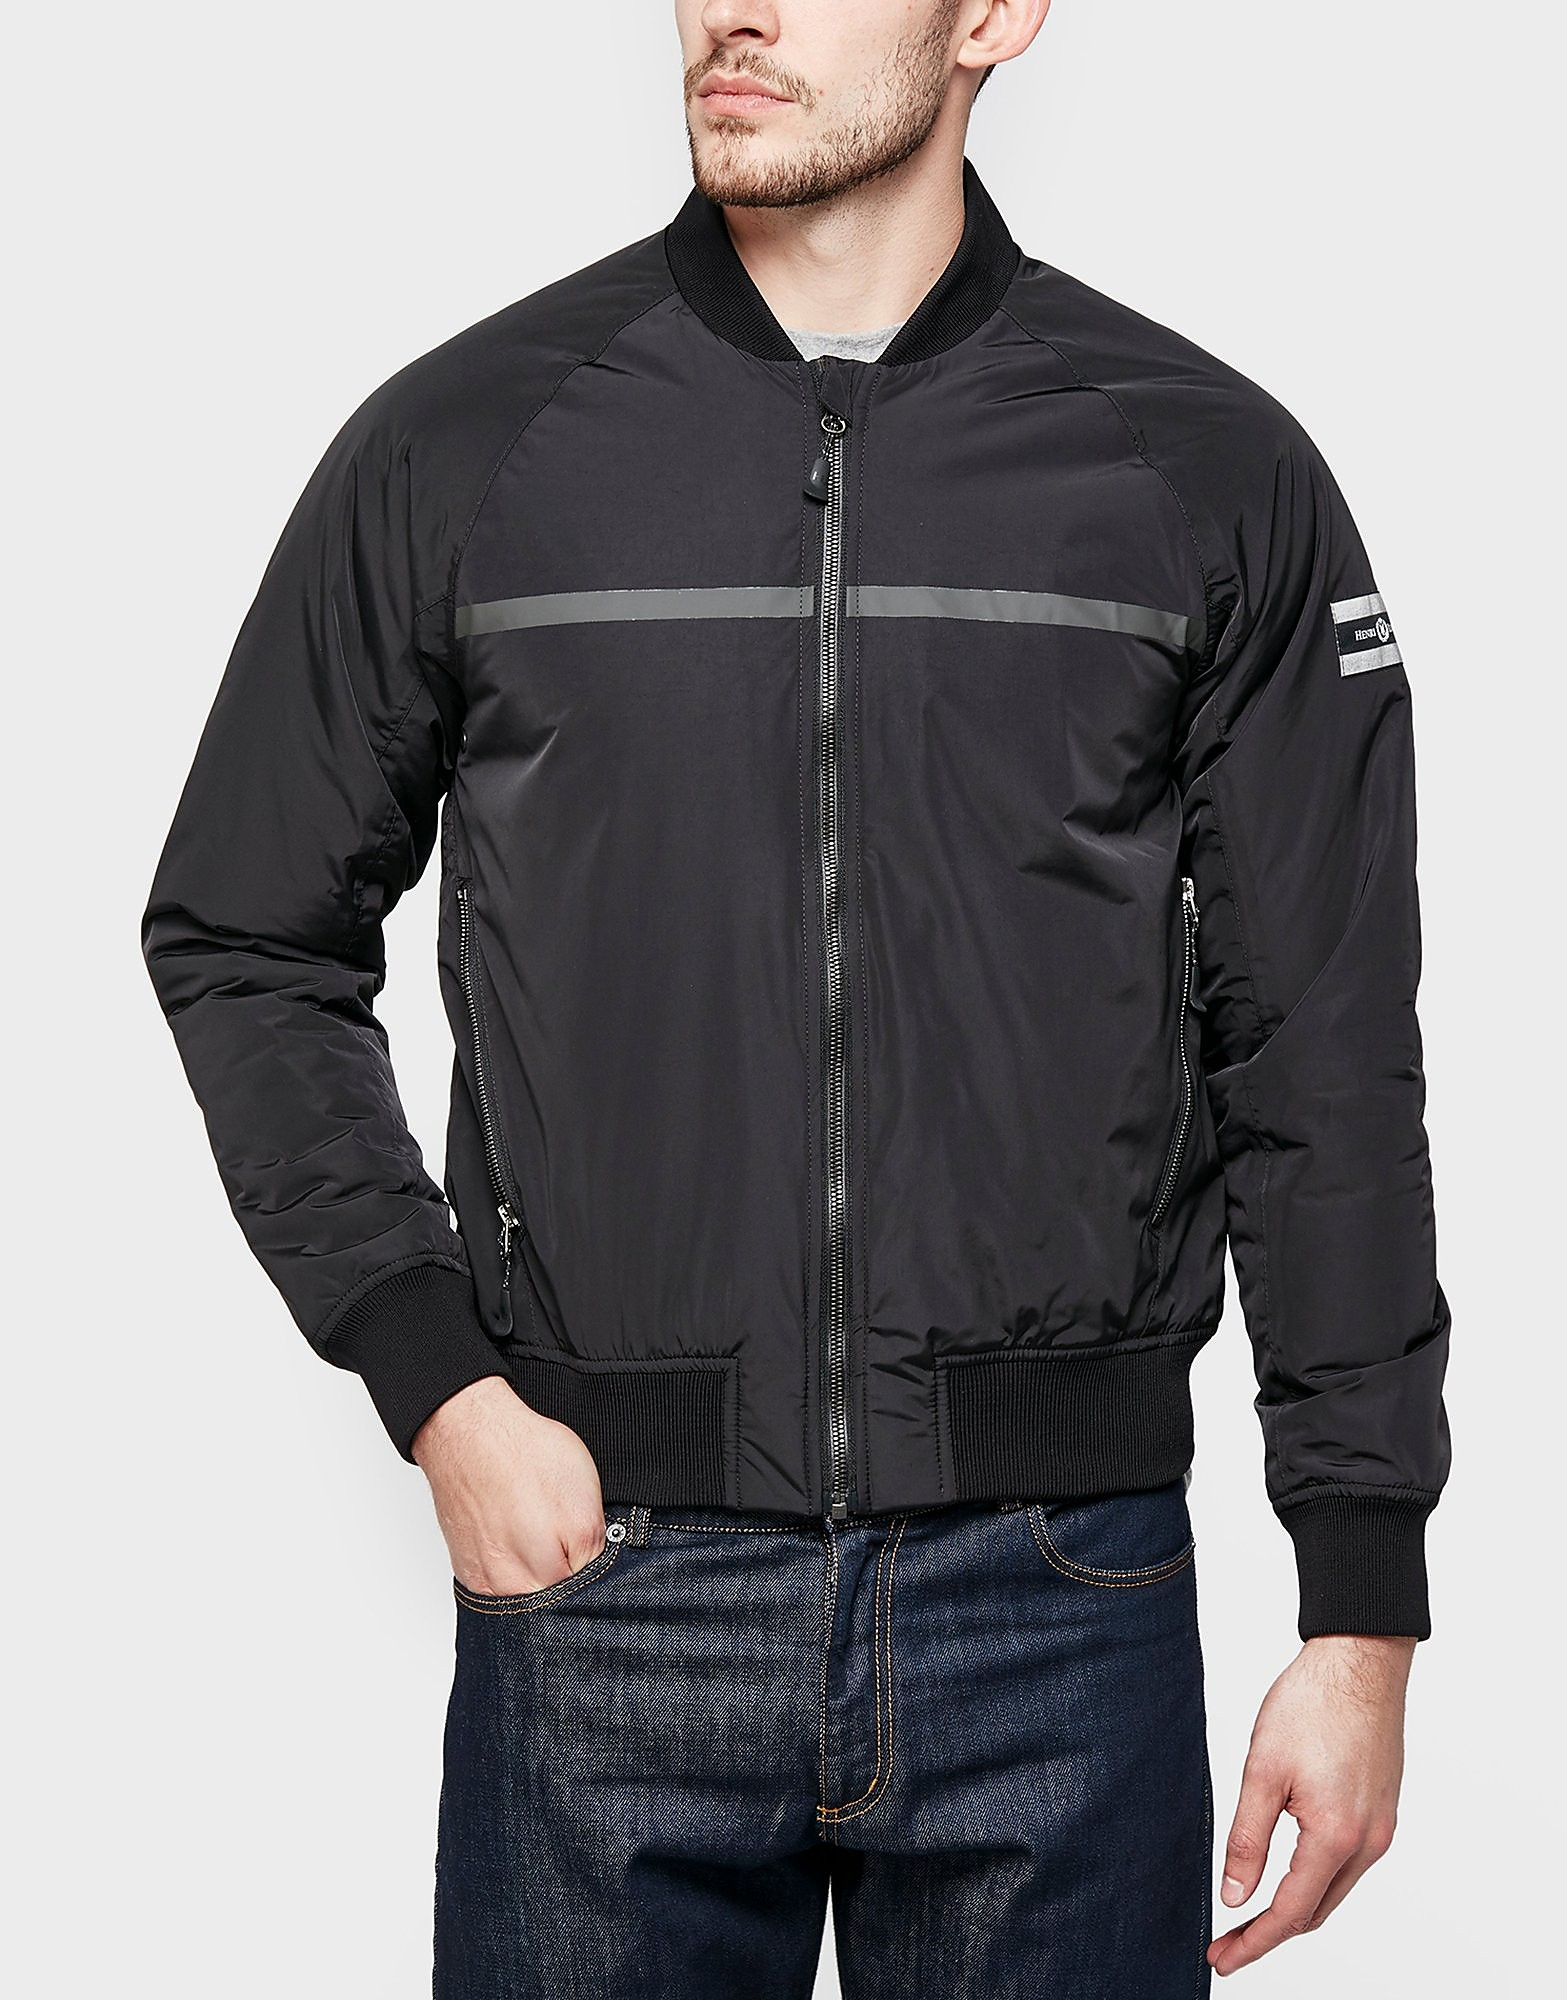 Henri Lloyd Black Label Bomber